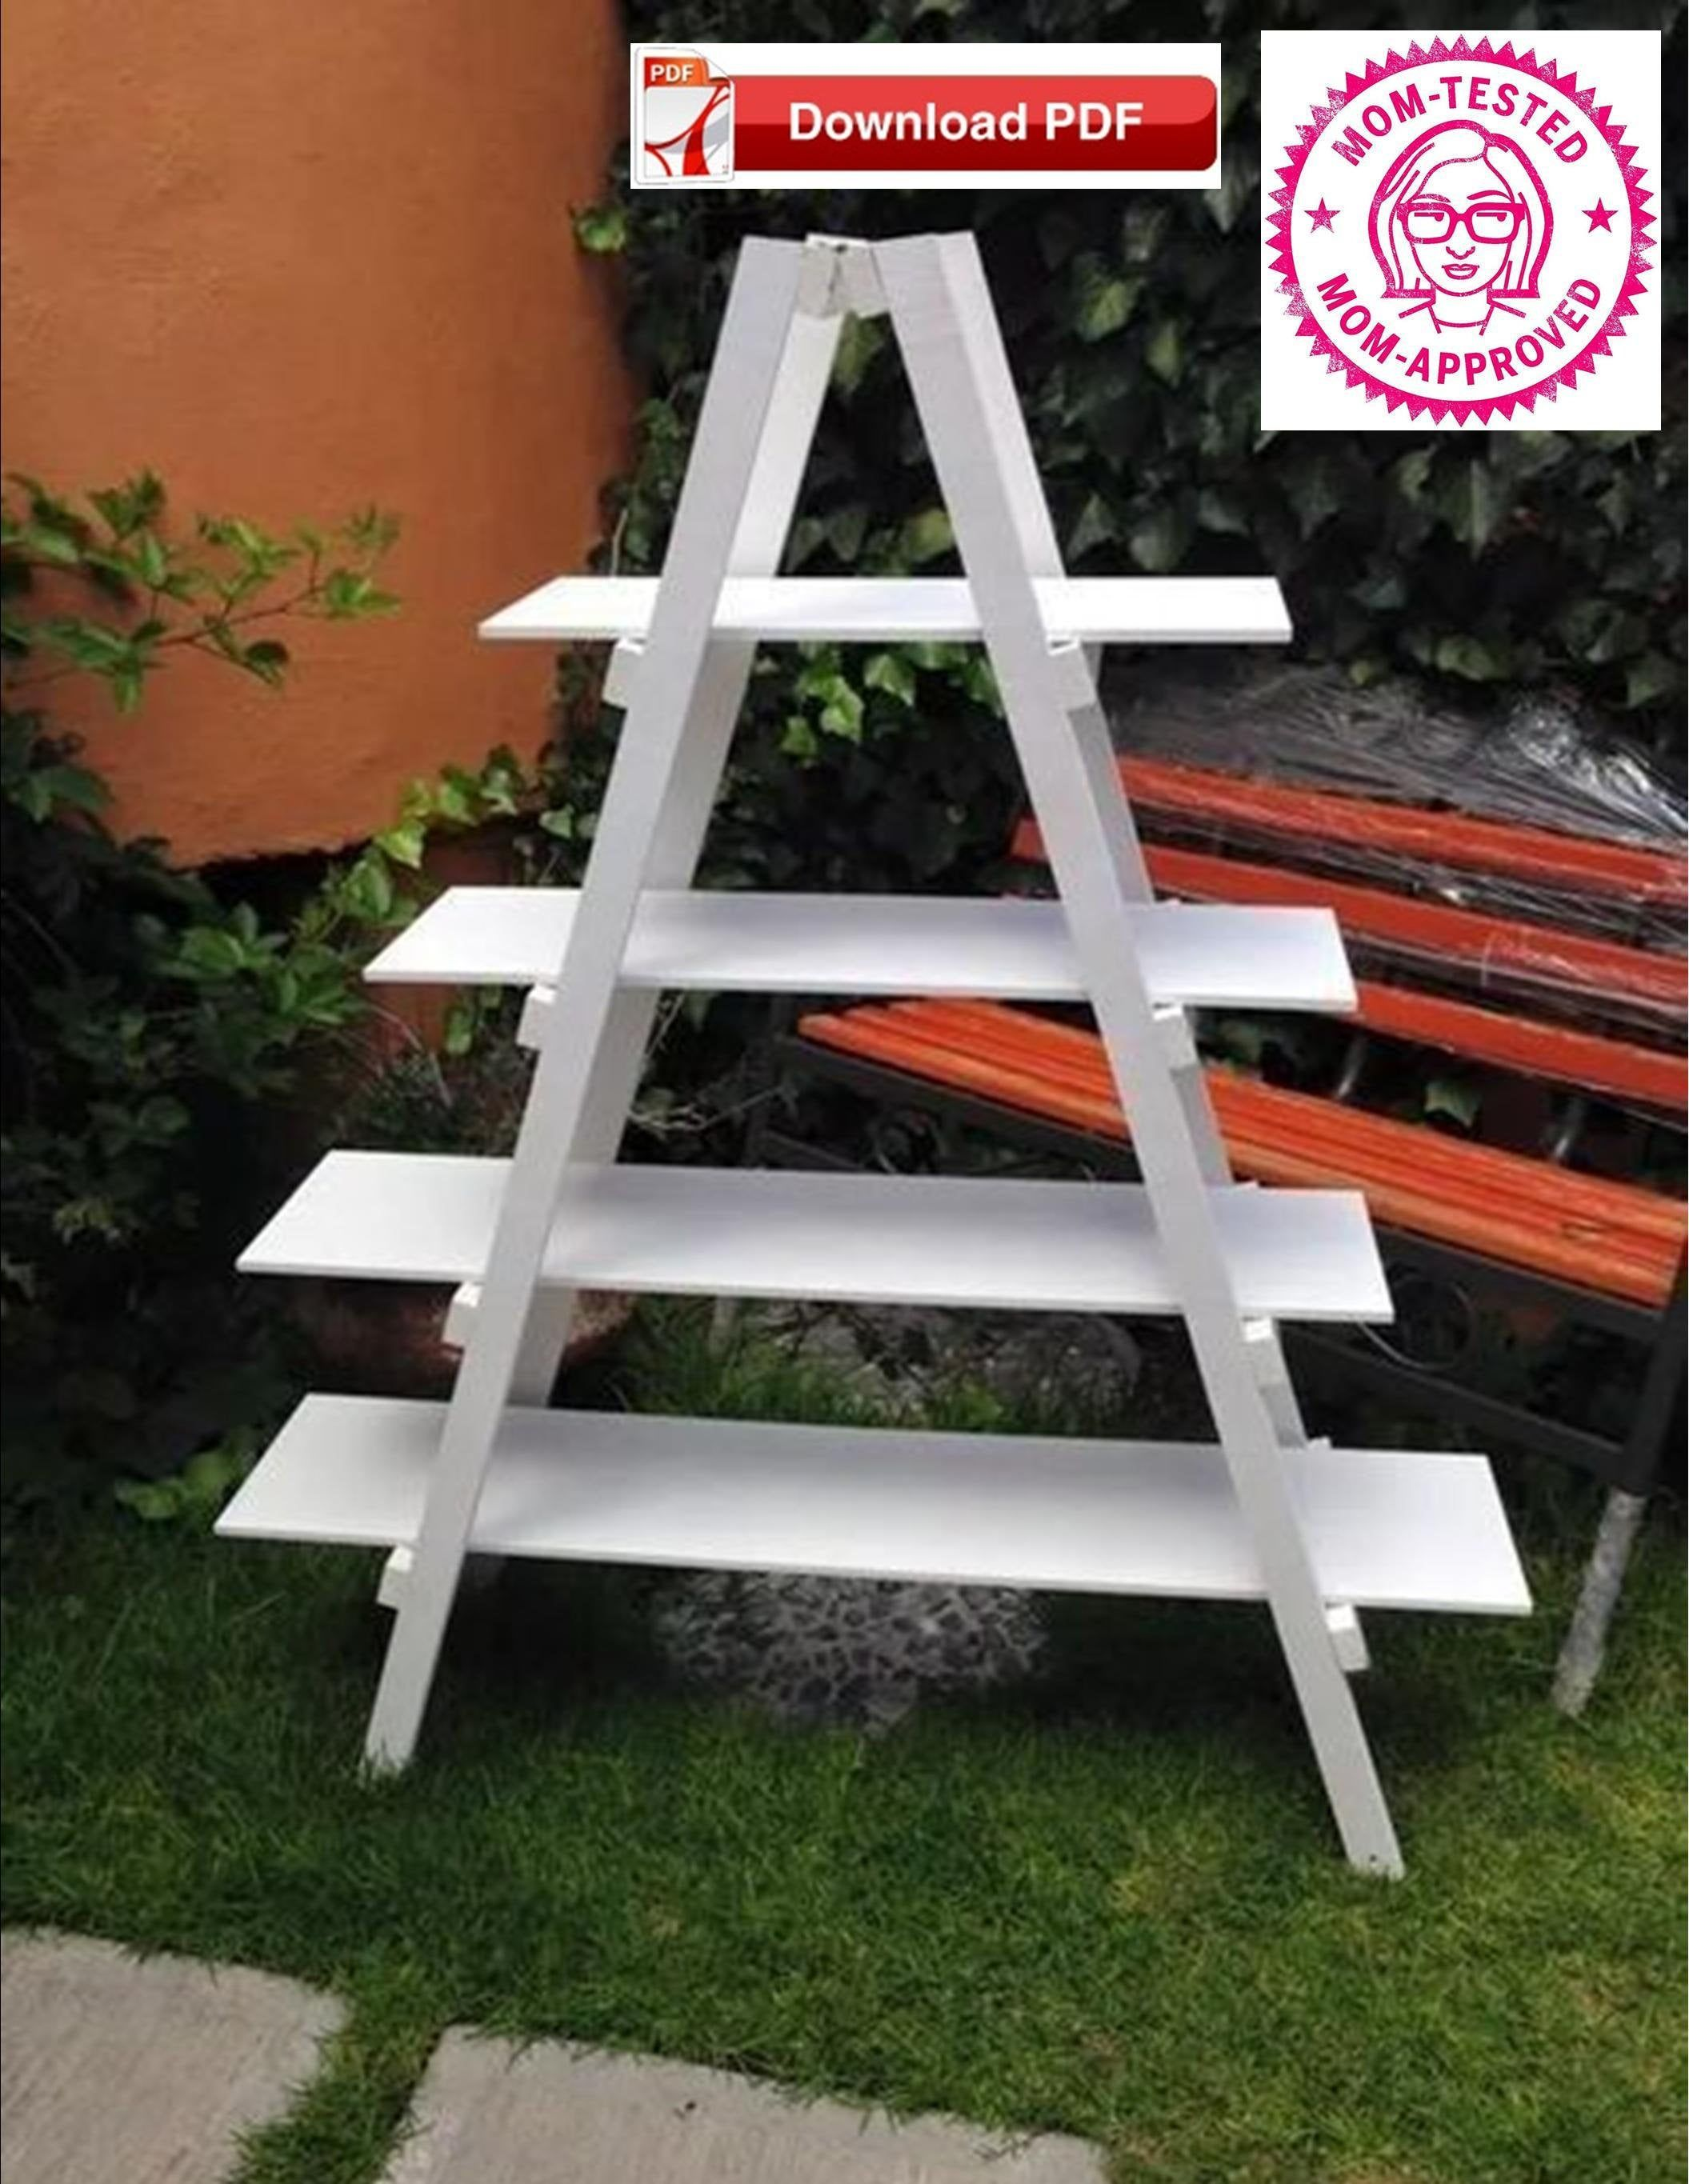 Craft Show Display Stand Plan Ladder Display Stand Plan Wood